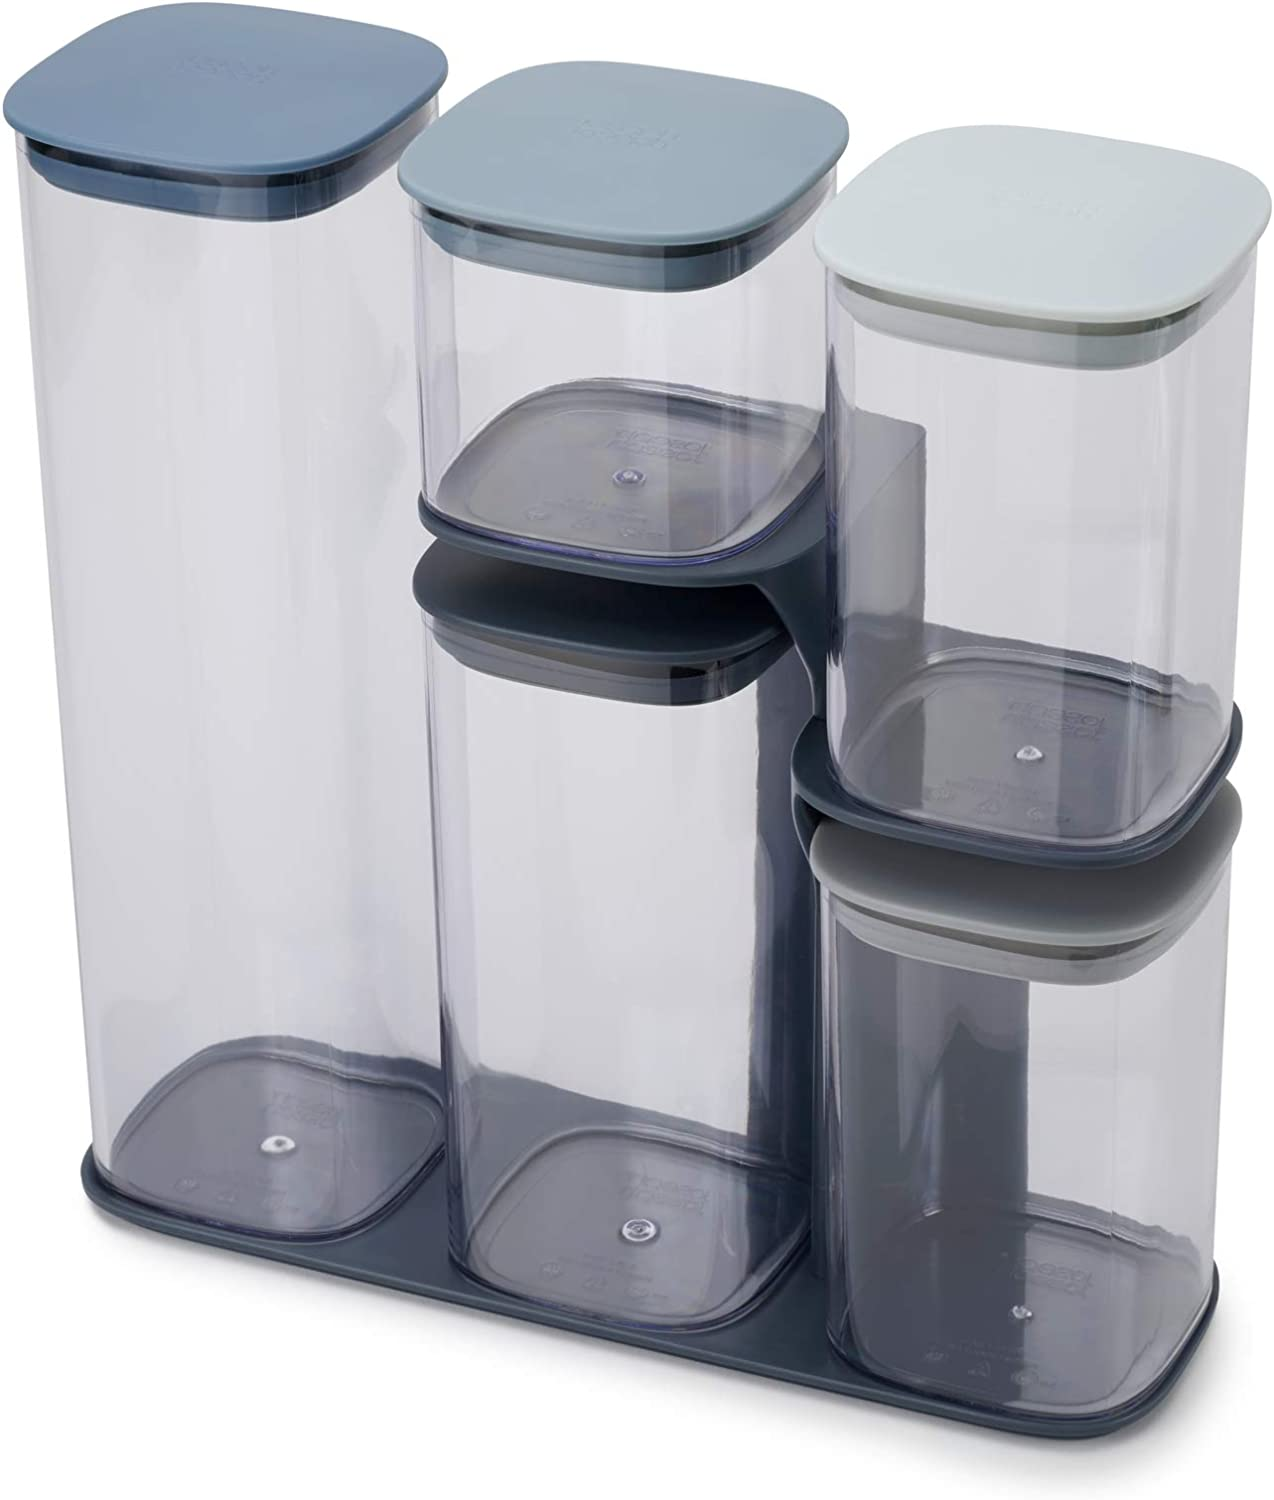 Joseph Joseph 81106 Podium Dry Food Storage Container Set with Stand, 5-piece, Editions Sky